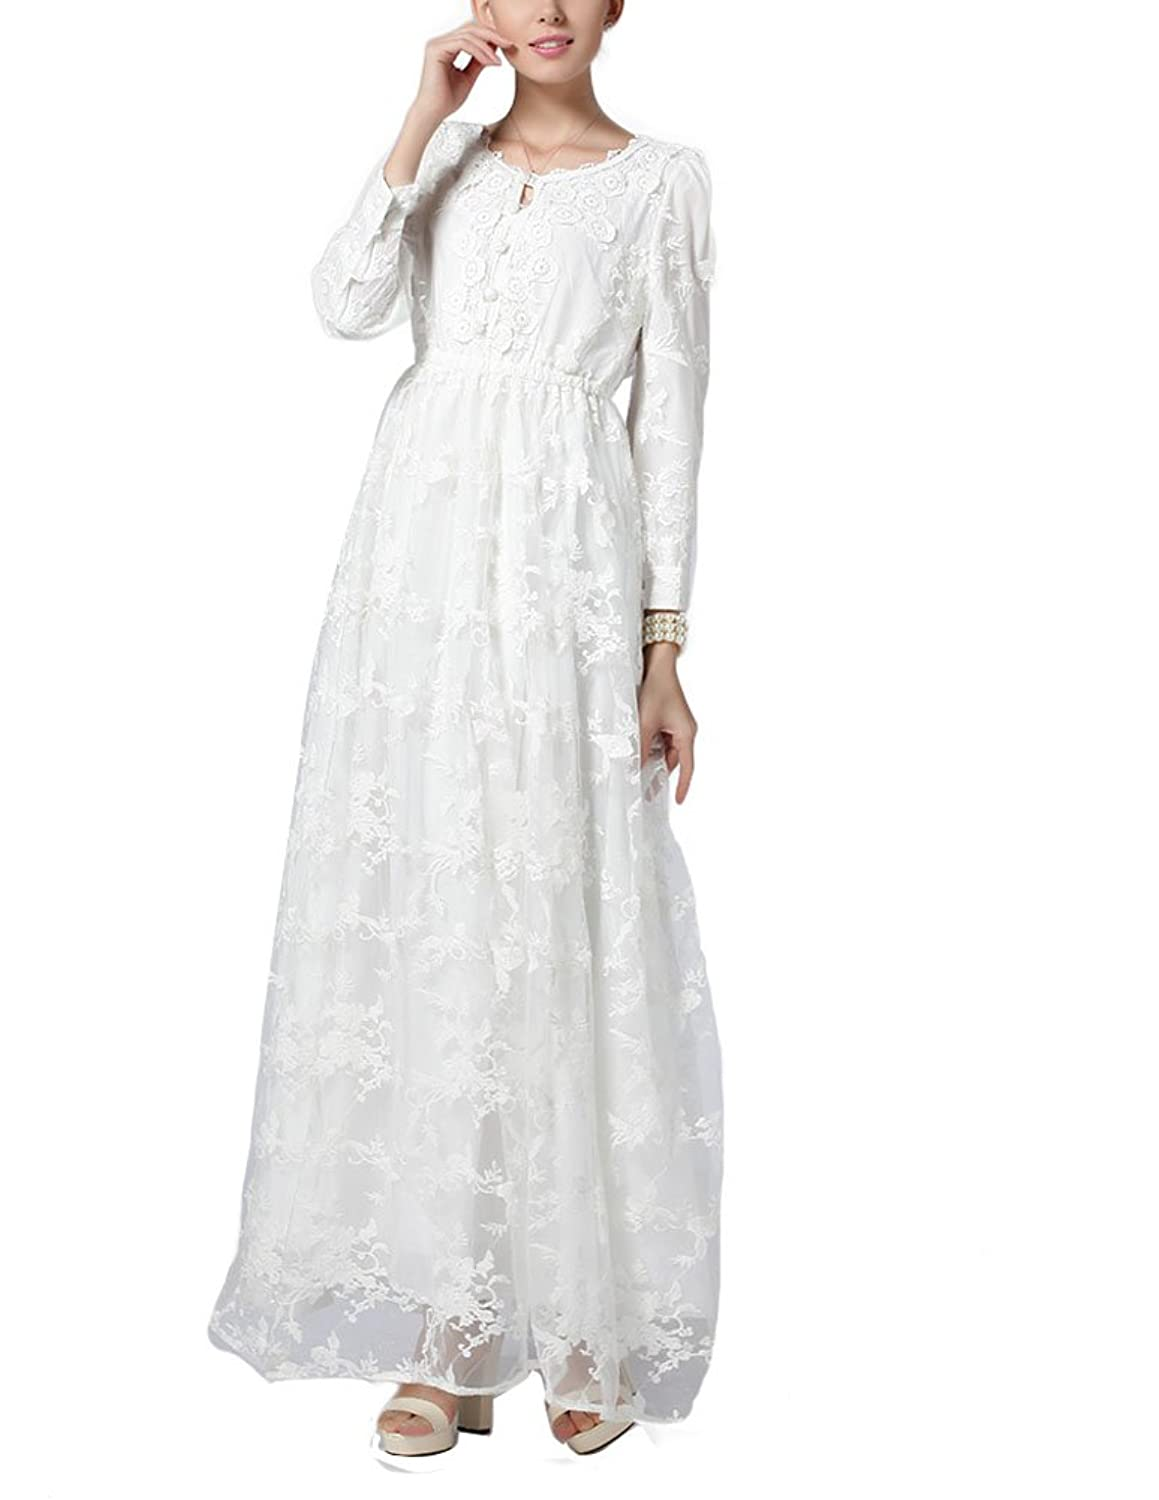 60s Wedding Dress | 1960s Style Wedding Dresses Three Layers Crochet Embroidery Craft Lace Wedding Dress LYQ0156 $49.99 AT vintagedancer.com